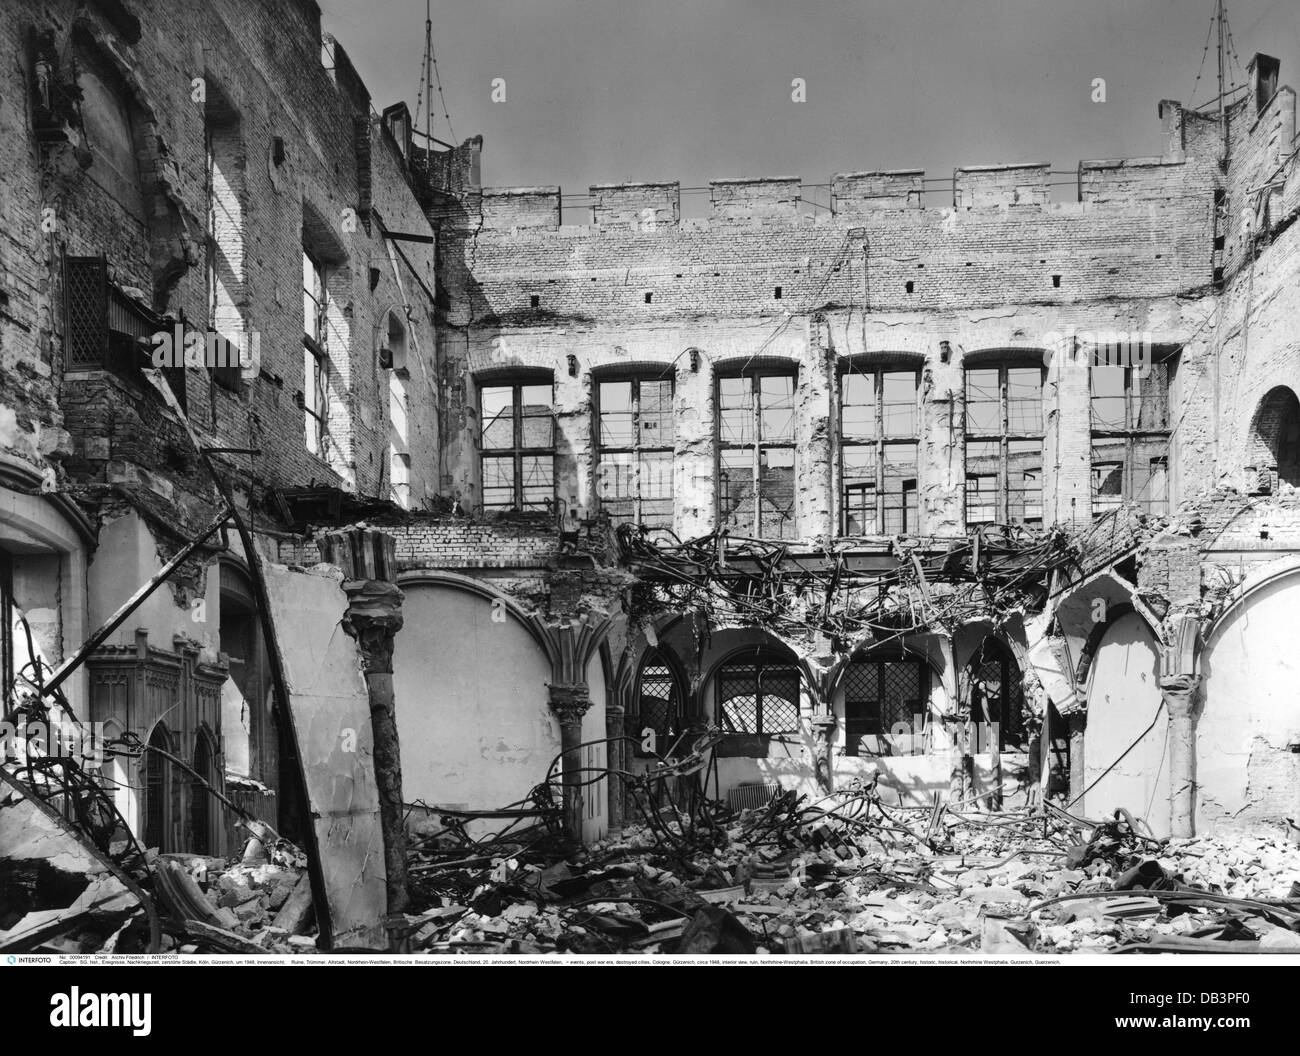 events, post war era, destroyed cities, Cologne, Gürzenich, circa 1948, Additional-Rights-Clearences-NA - Stock Image